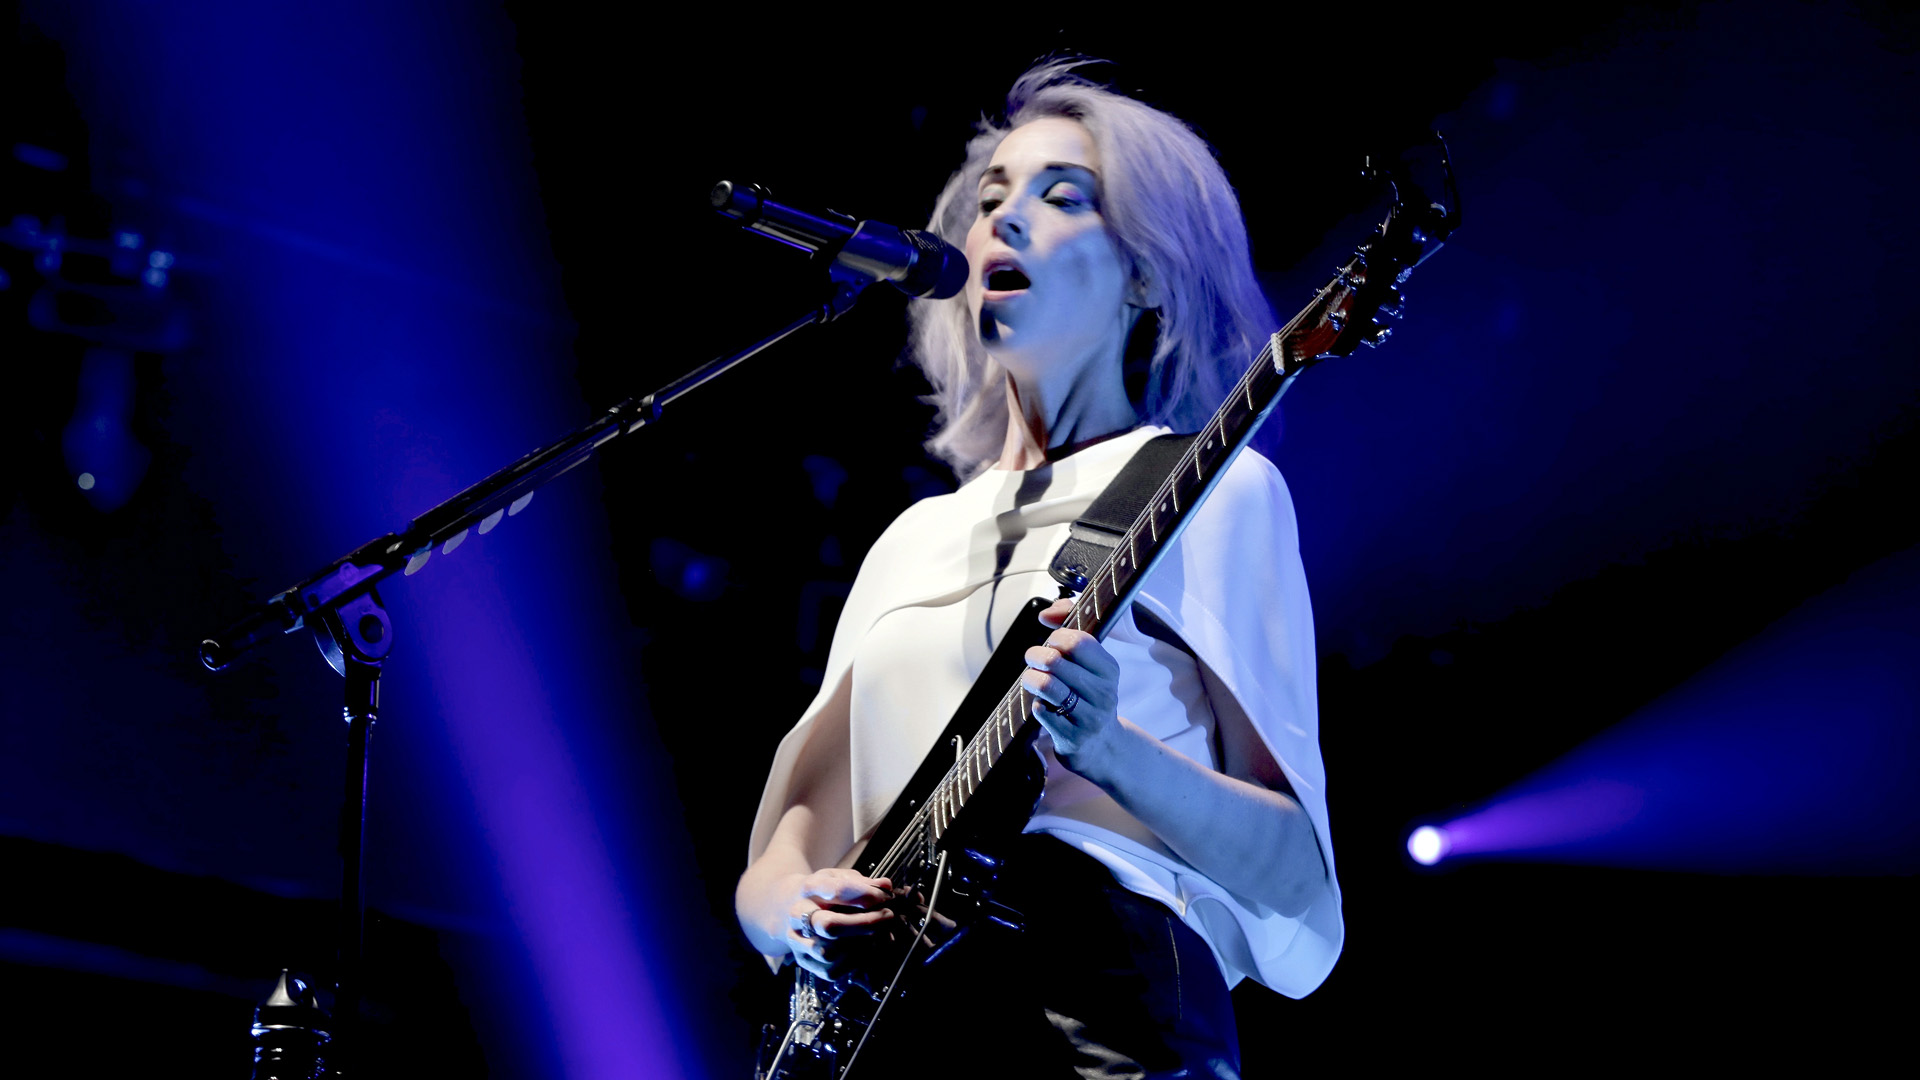 Missed FUV's broadcast of St. Vincent at Celebrate Brooklyn? Listen now in the FUV Vault.